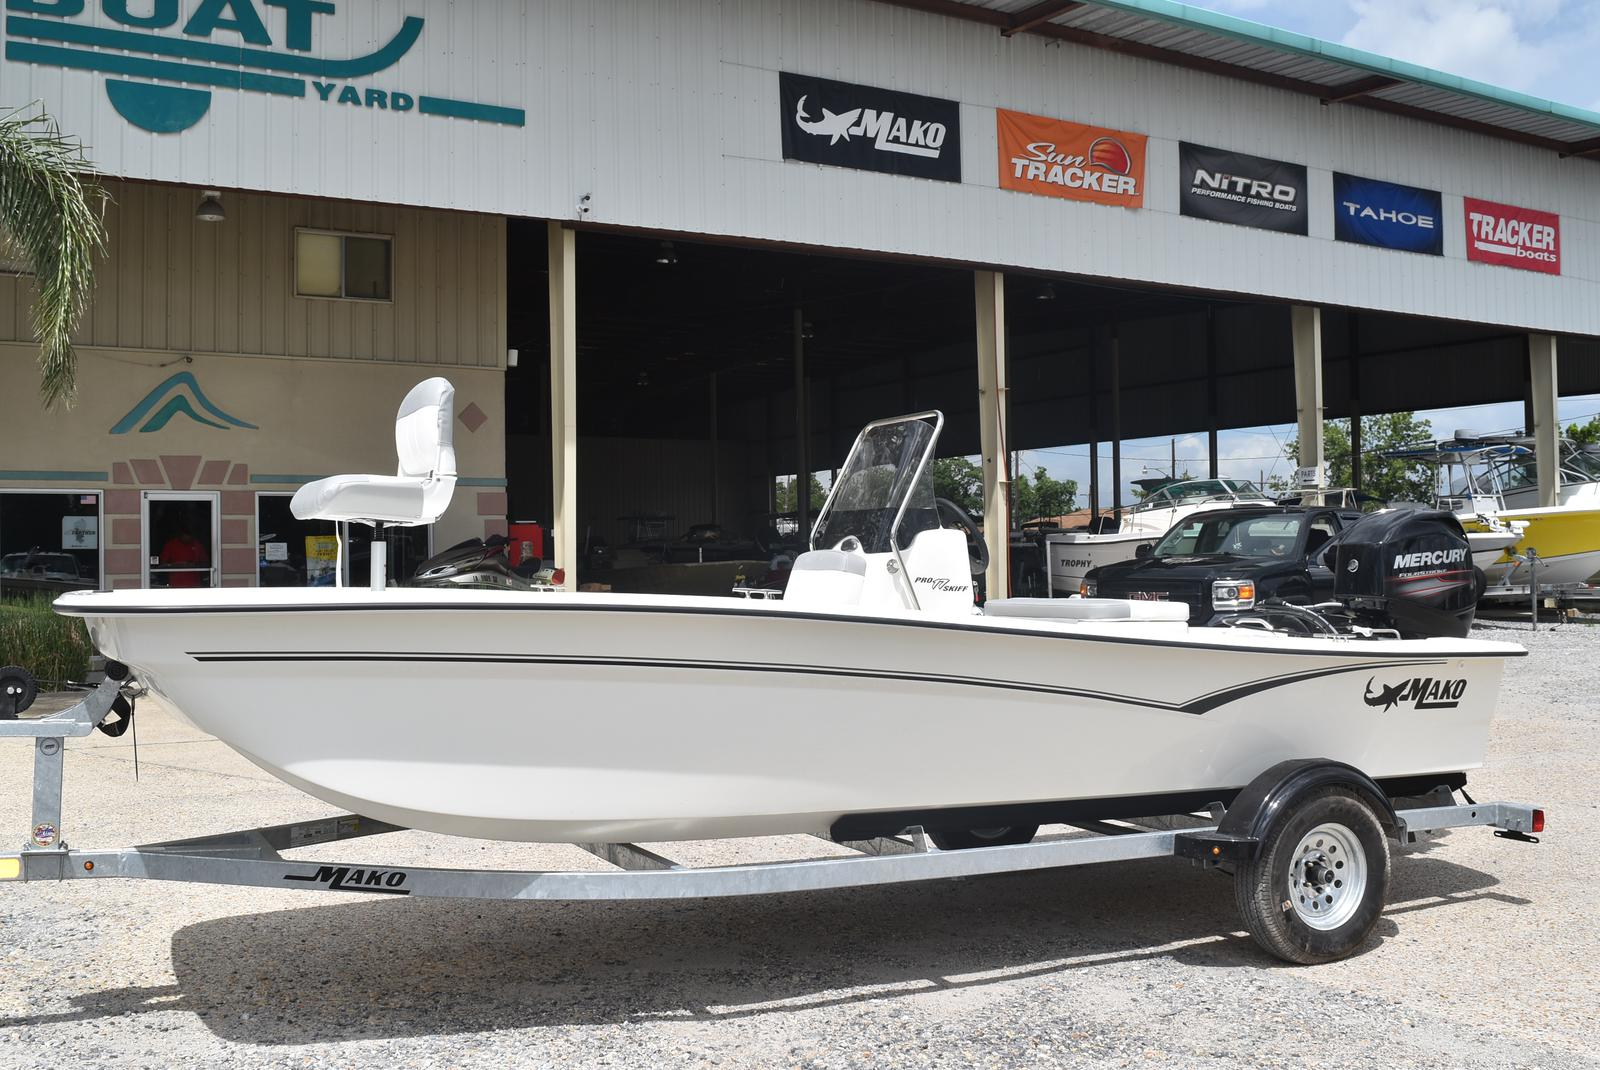 2020 Mako boat for sale, model of the boat is Pro Skiff 17, 75 ELPT & Image # 114 of 702